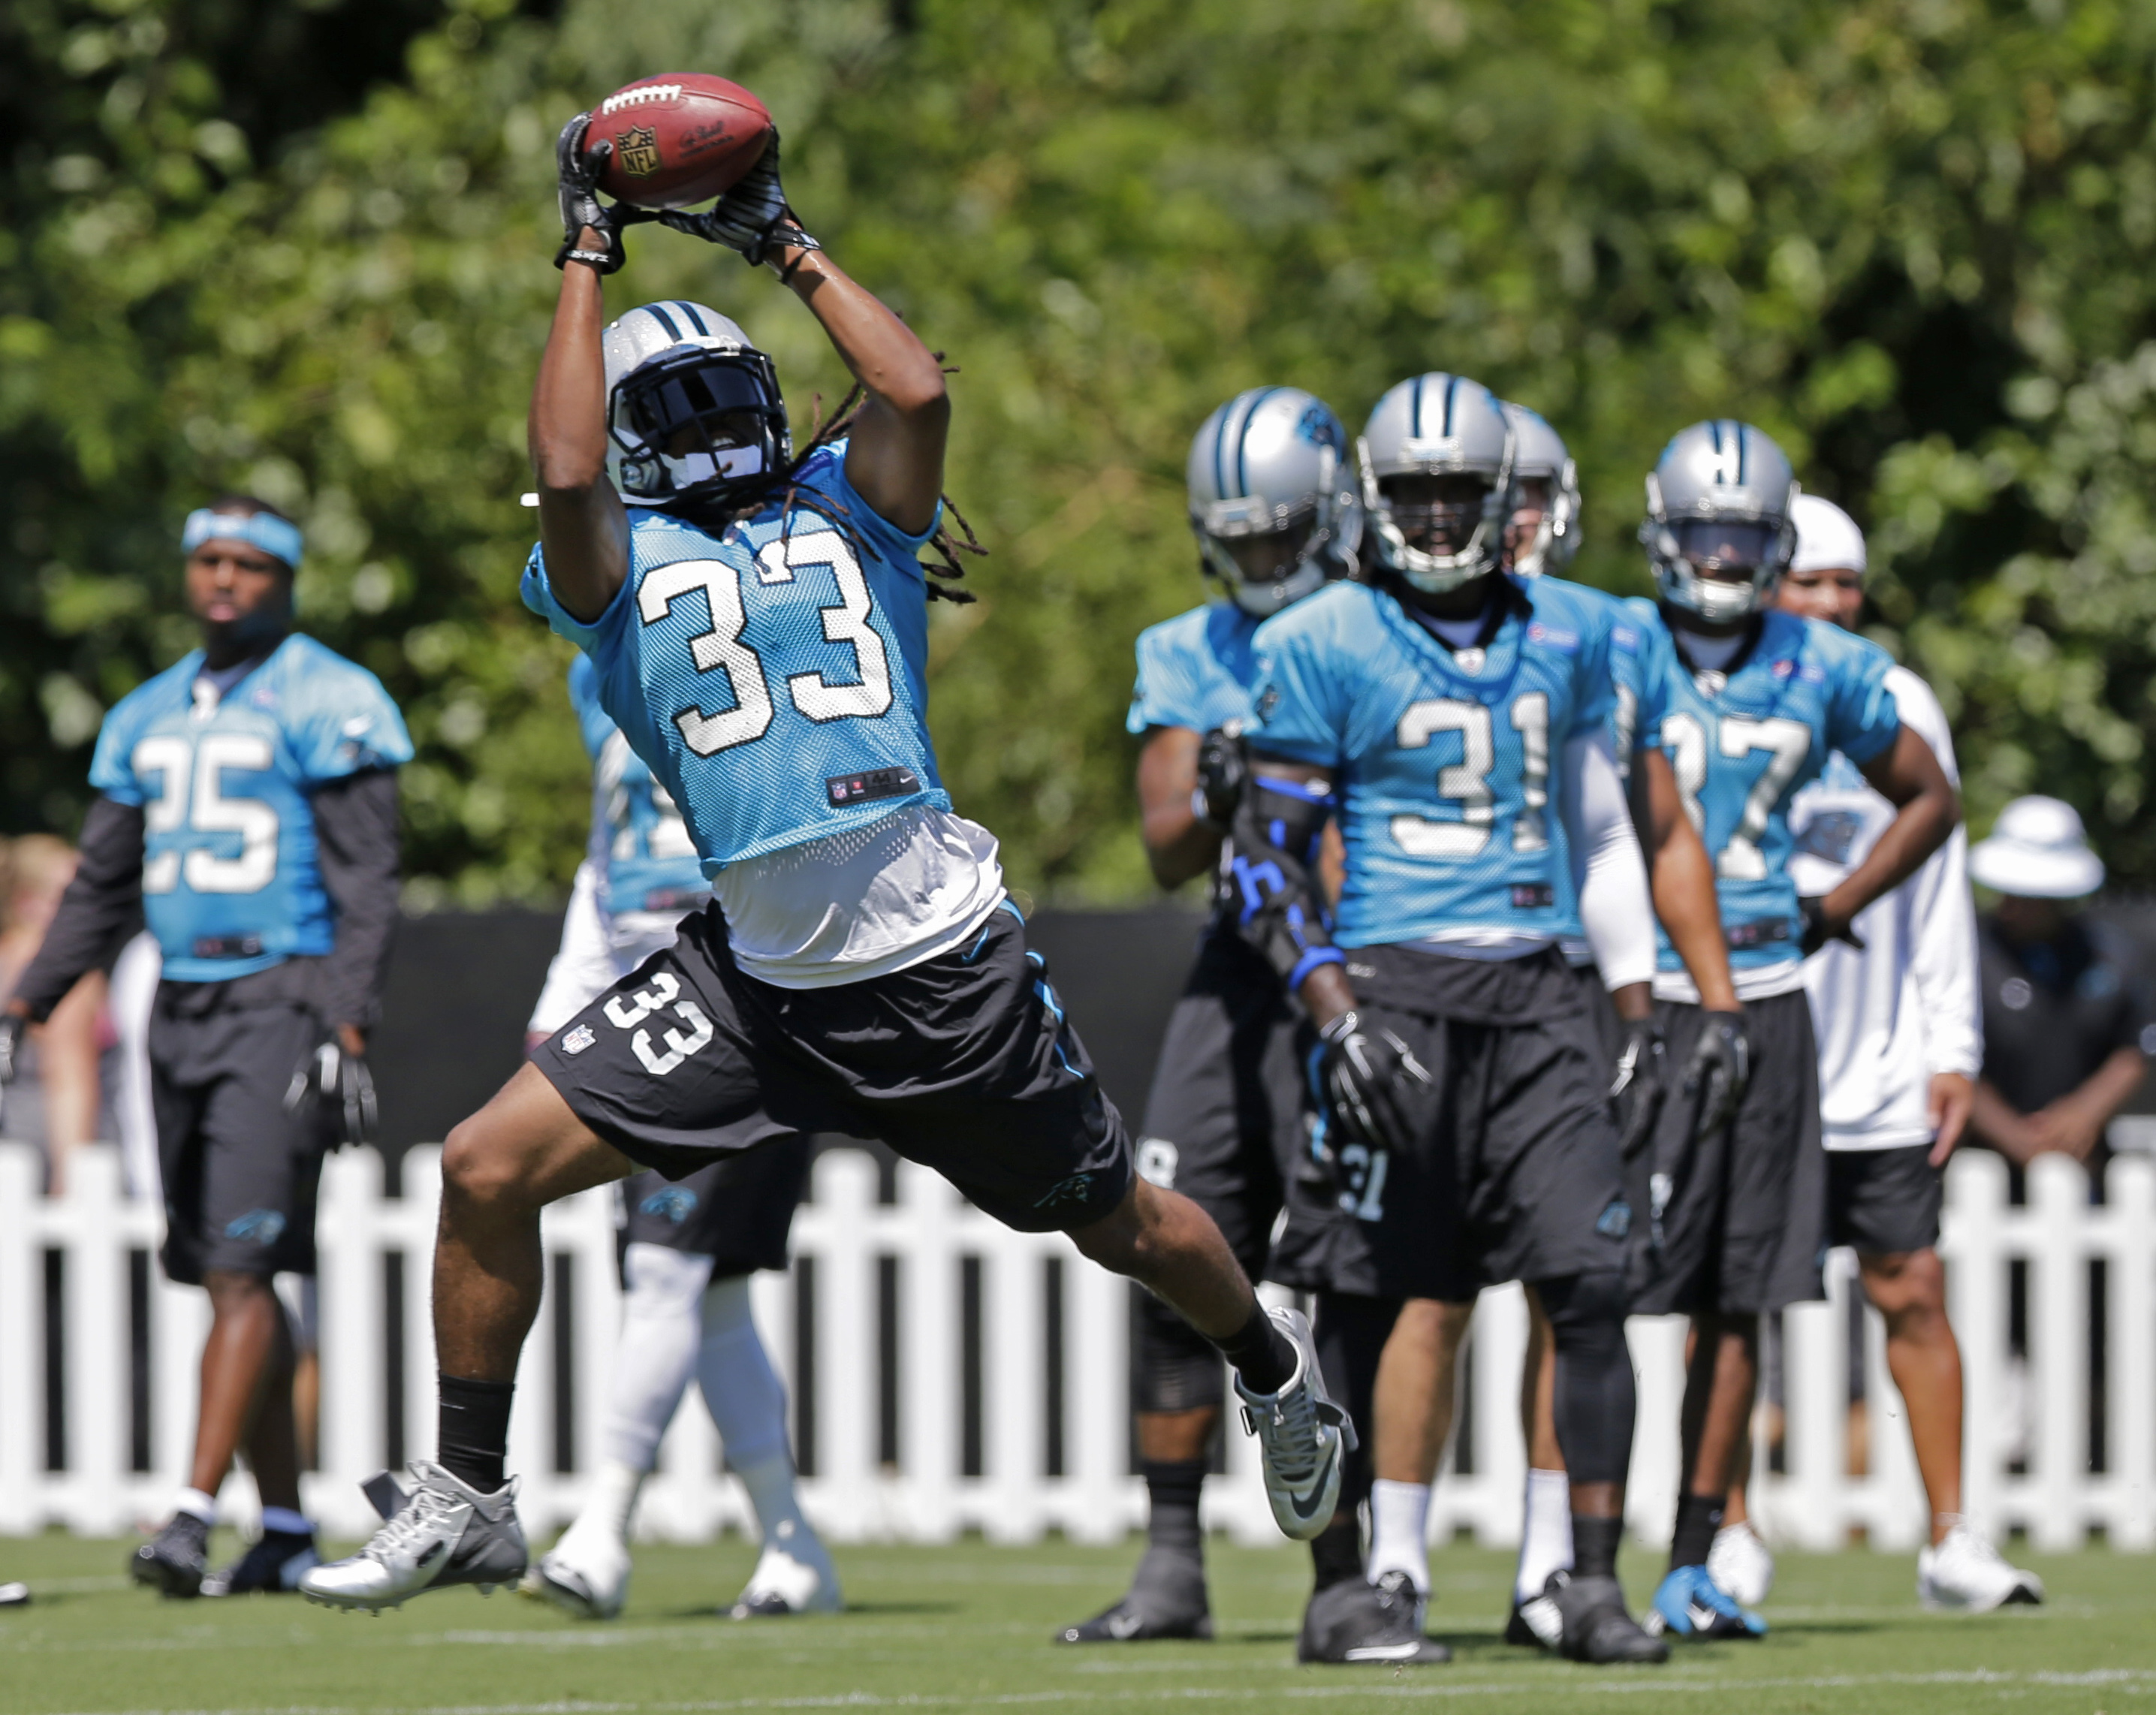 Carolina Panthers' Tre Boston (33) catches a ball in a drill during the NFL football team's training camp in Spartanburg, S.C., Saturday, Aug. 1, 2015. (AP Photo/Chuck Burton)